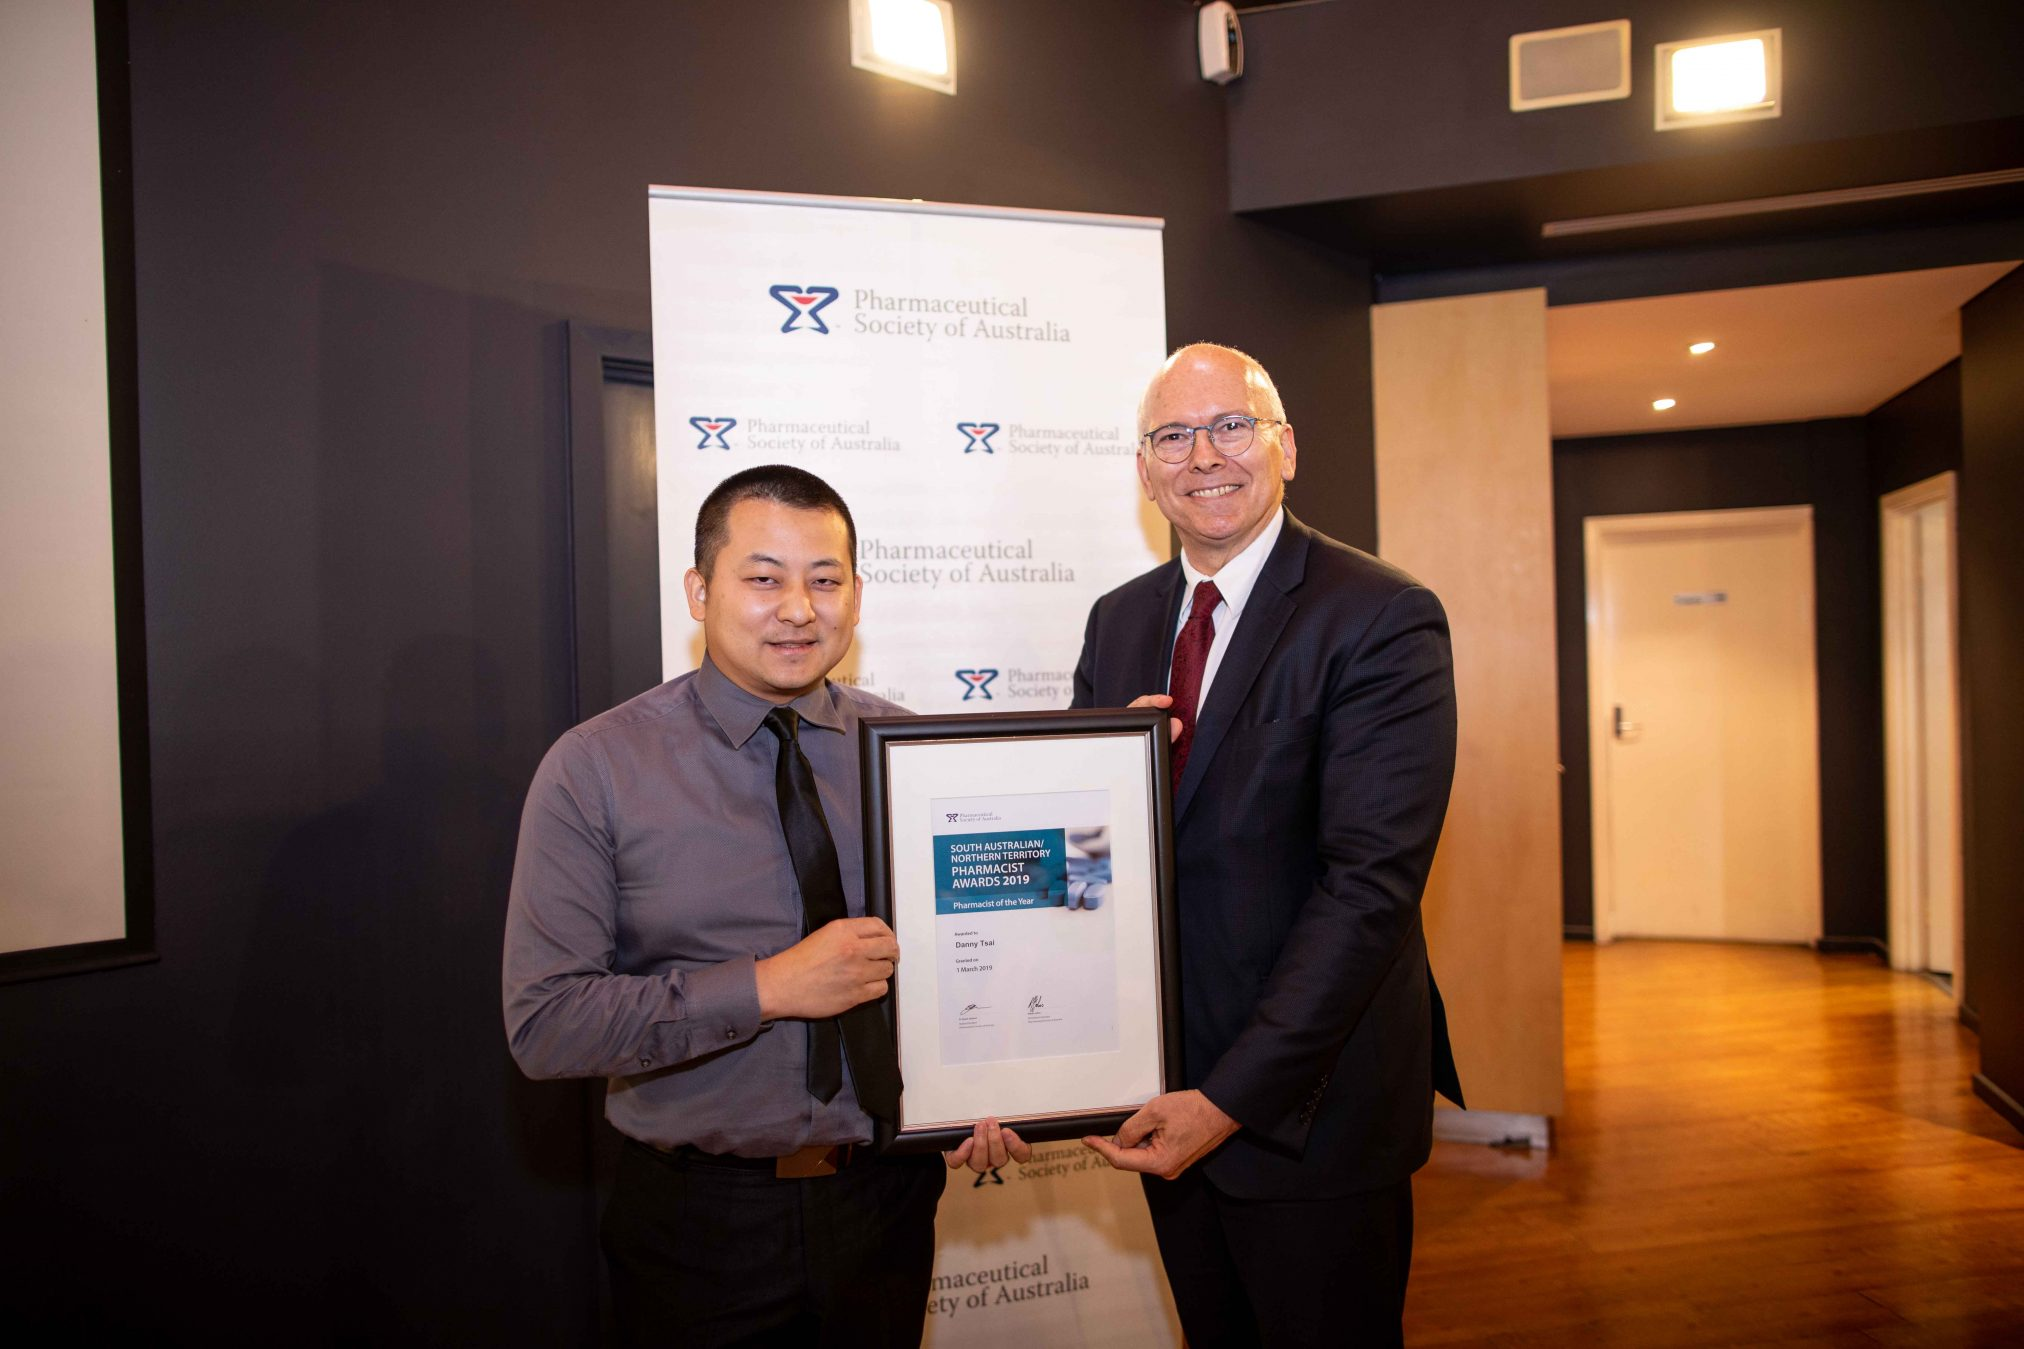 The Hon David Pisoni MP presents the SA/NT Pharmacist of the Year Award to Dr Danny Tsai